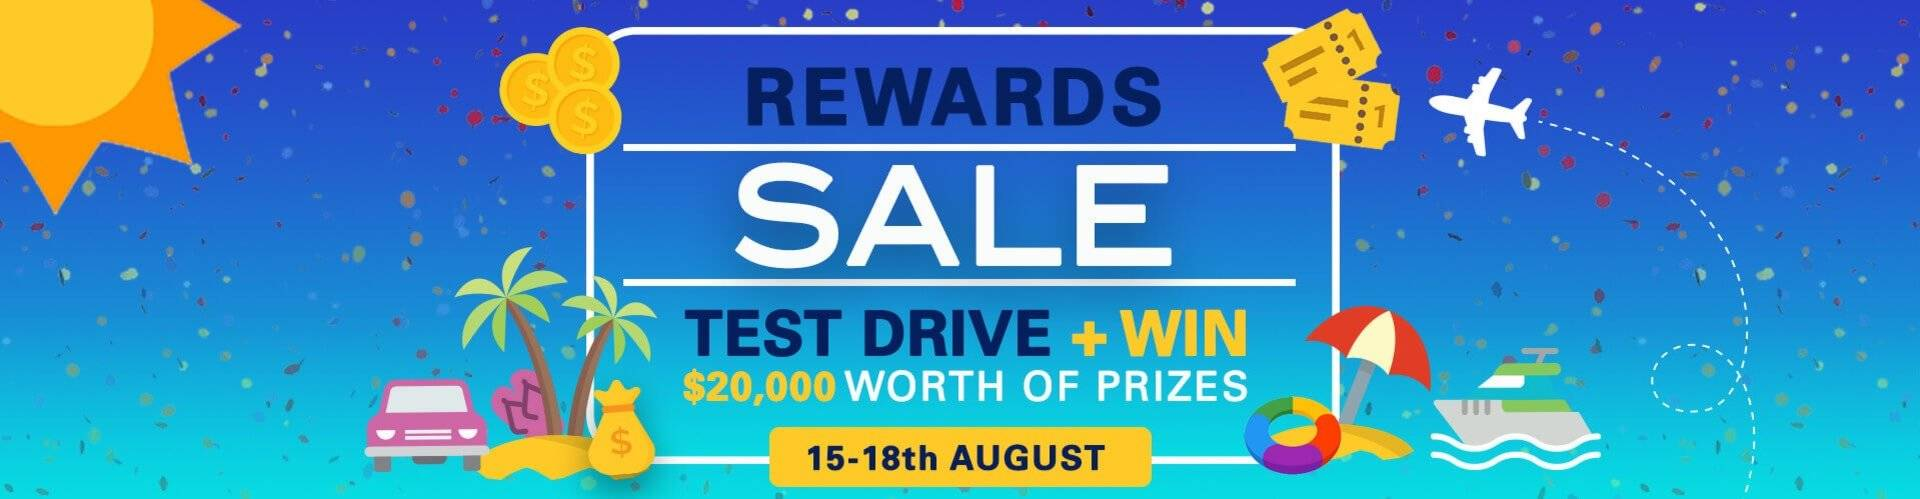 Toyota-Rewards Sale